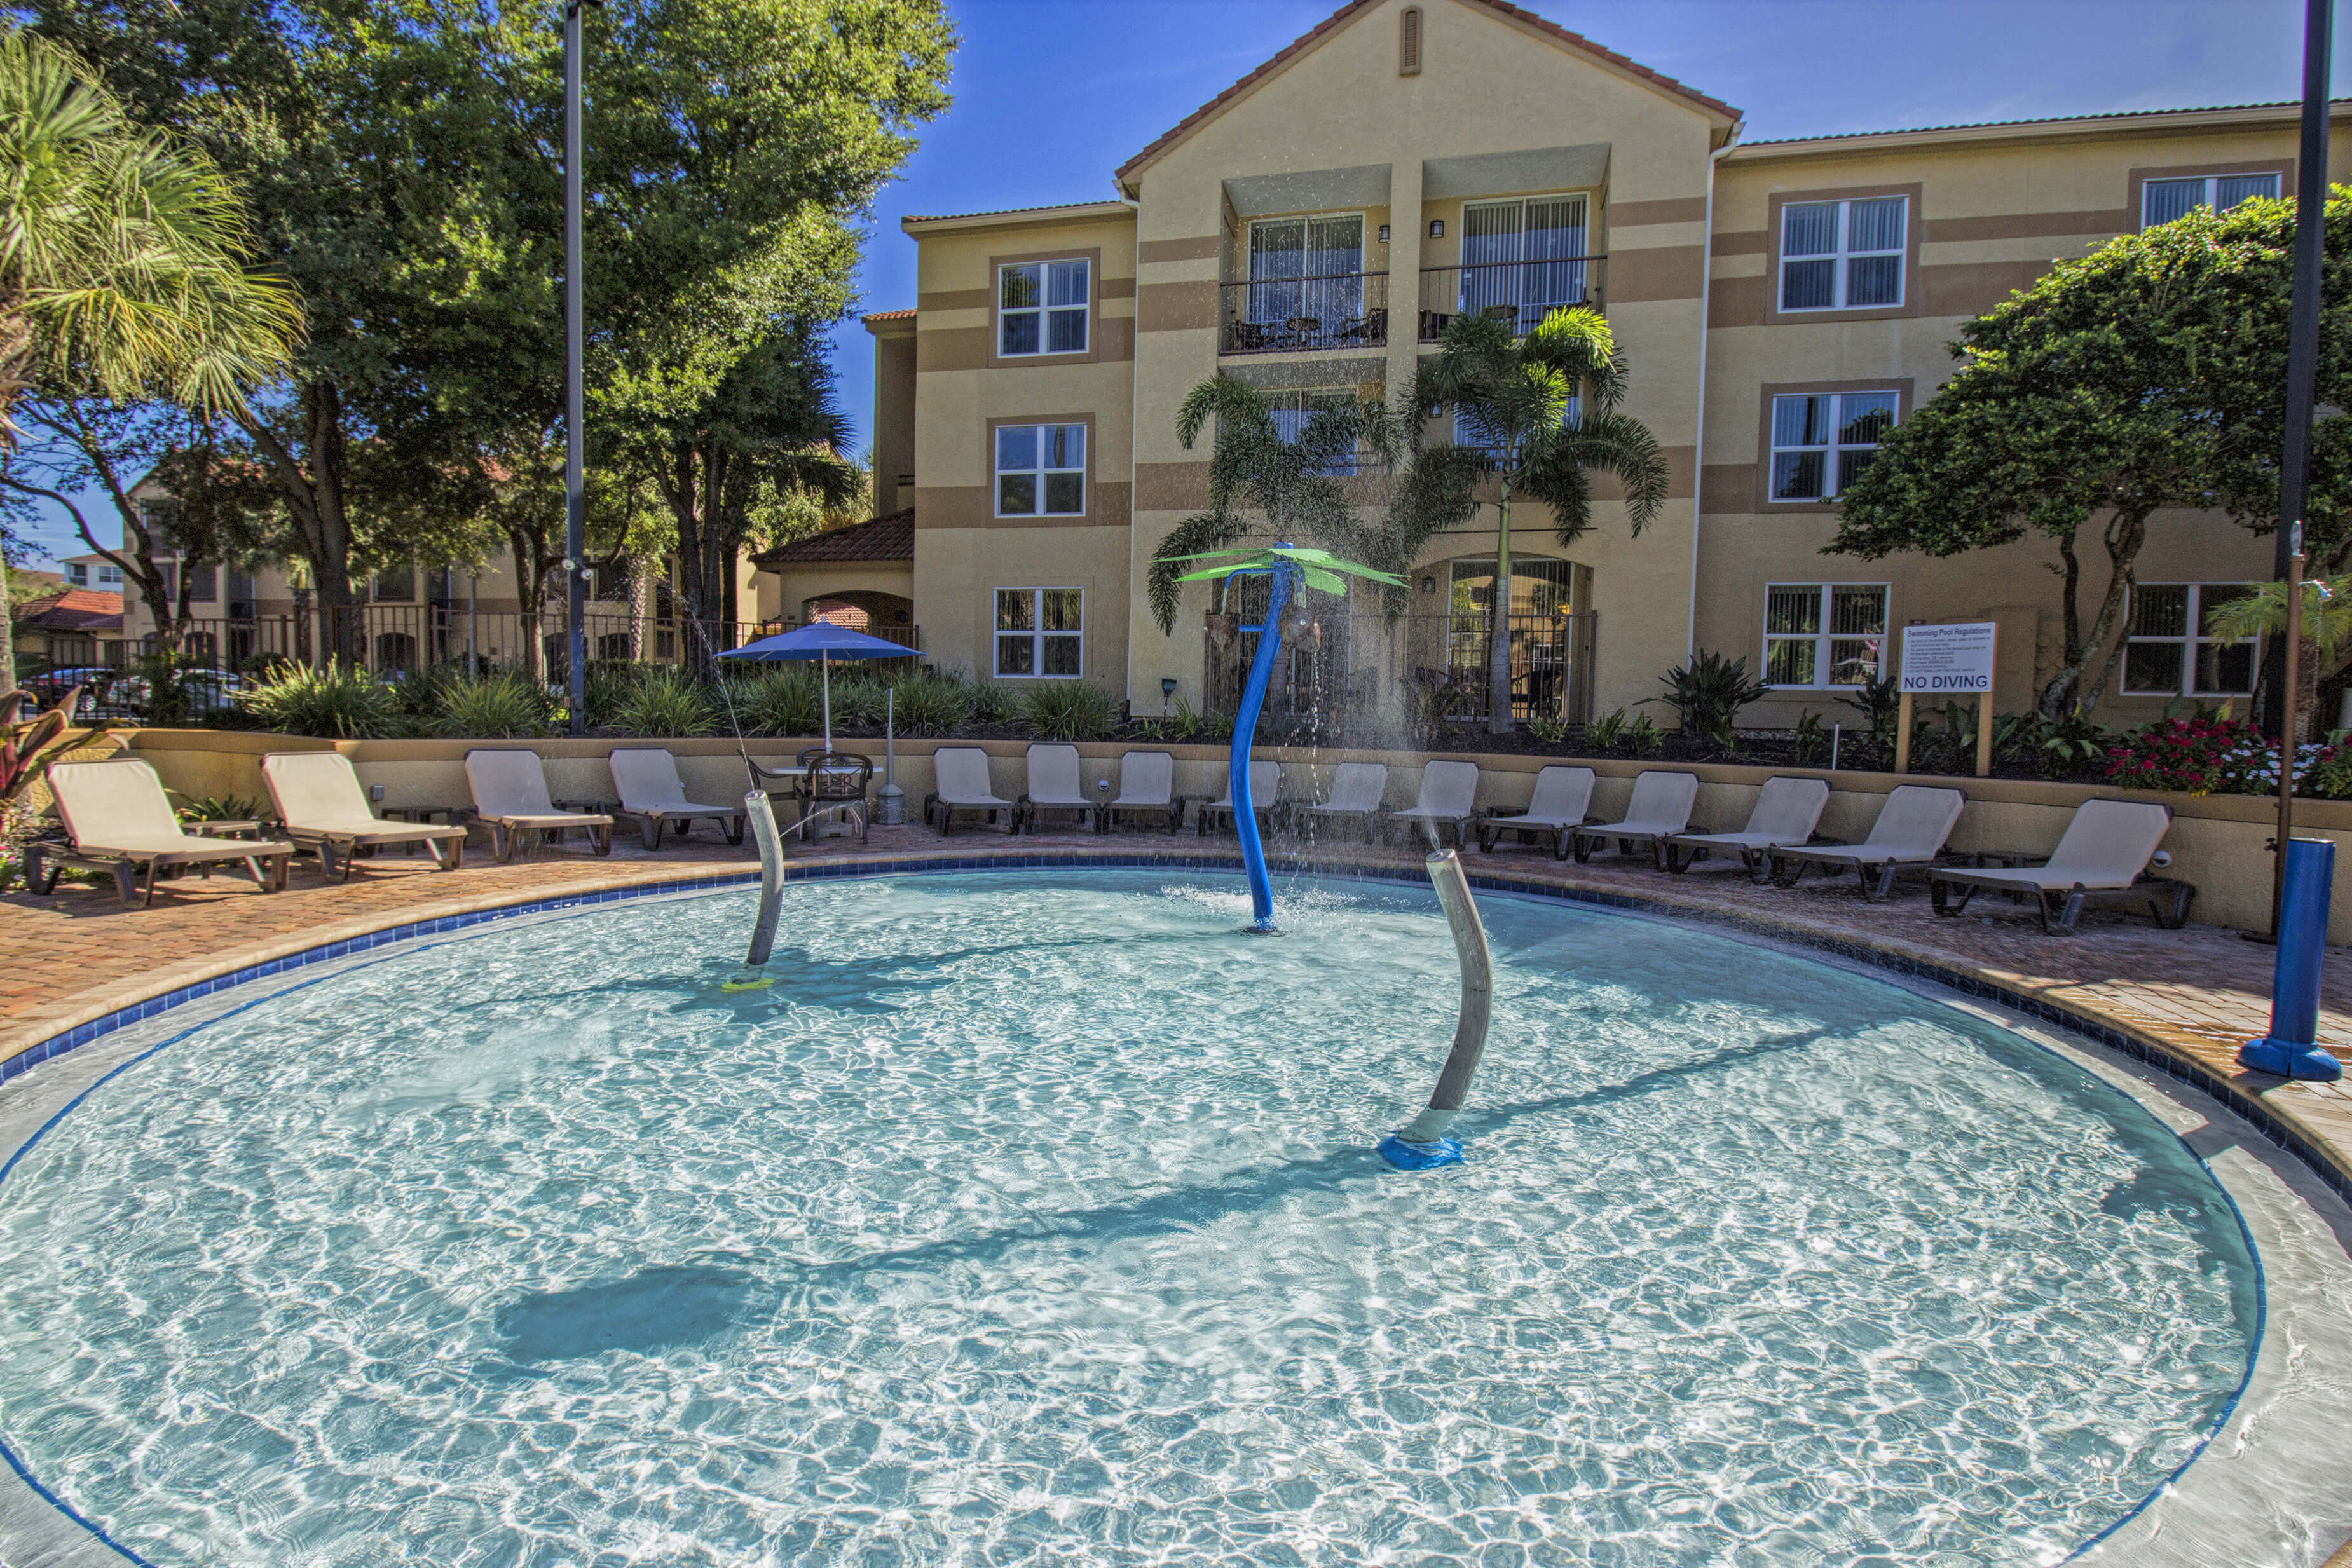 Children's water play area surrounded by lounge chairs | Westgate Blue Tree Resort